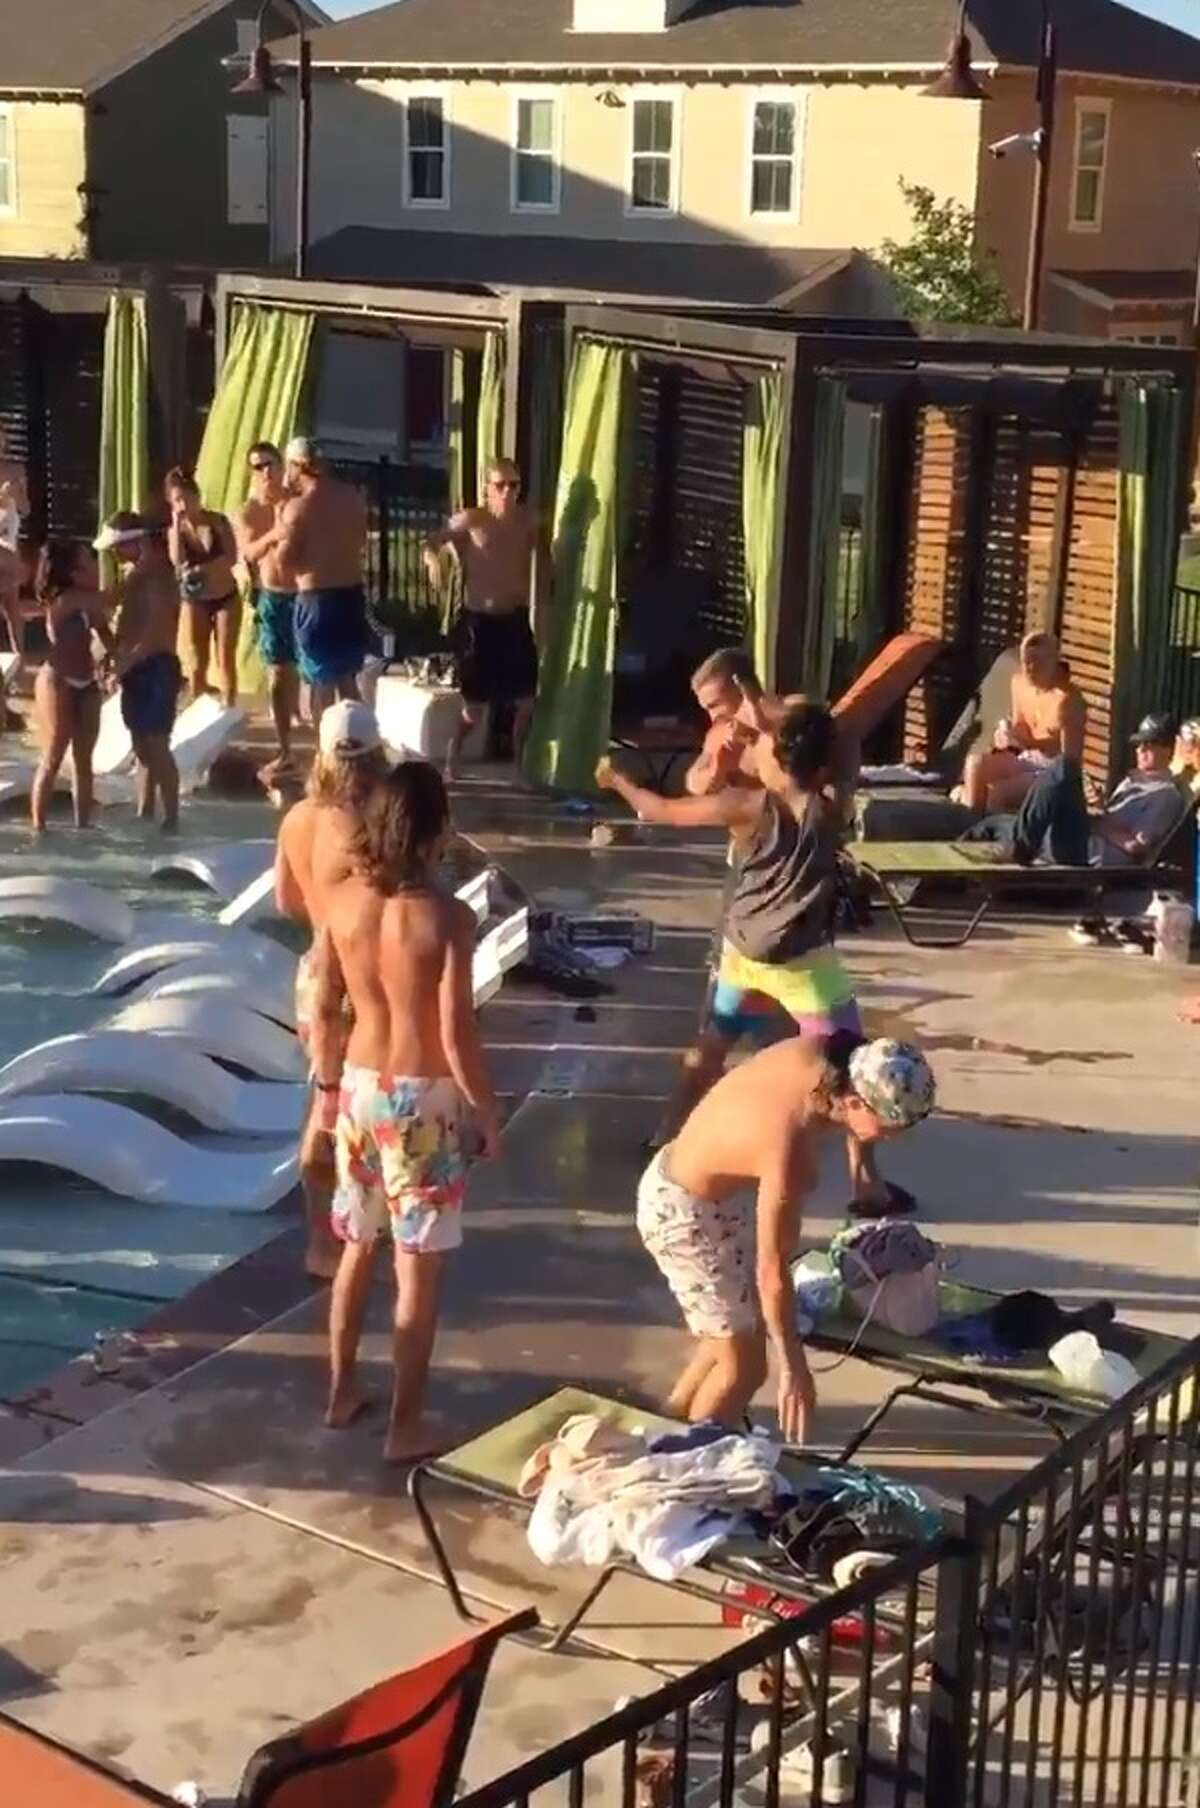 Twitter user, @WhiteBoy_Ejay, caught a brawl that happened on Sept. 10 at Capstone Cottages near Texas State University in San Marcos. City officials told mySA.com the incident was not reported.